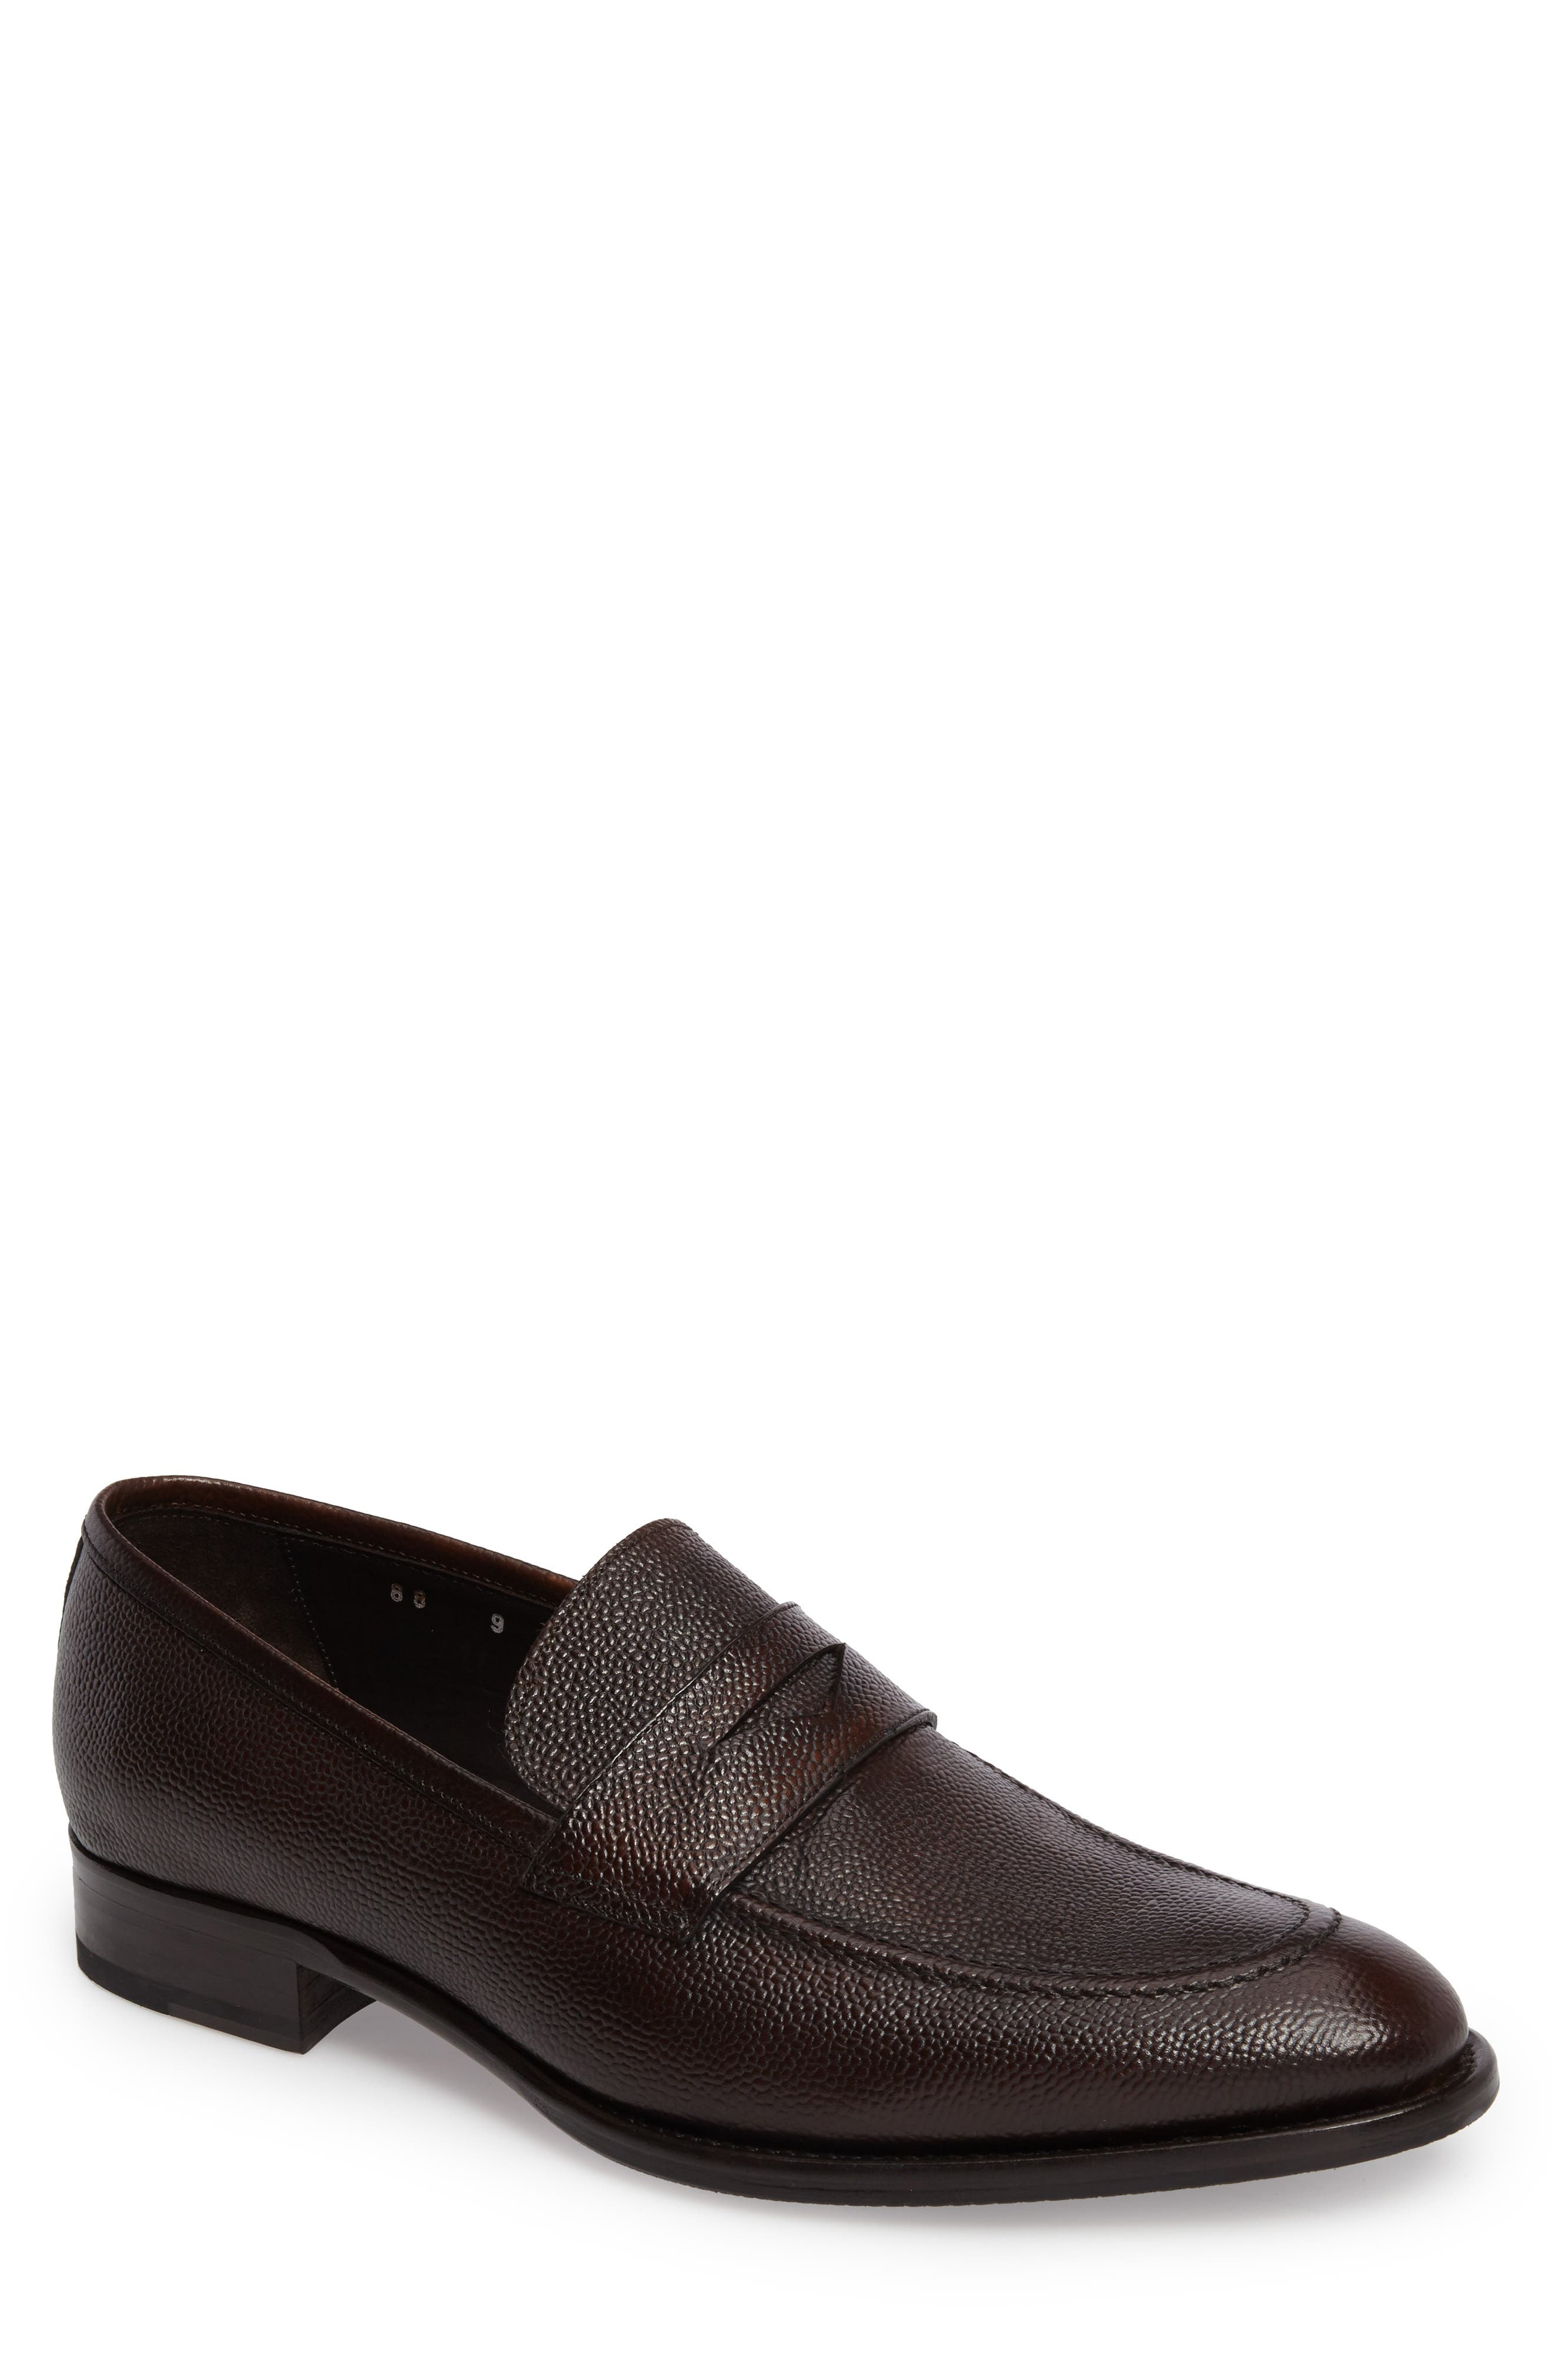 James Penny Loafer,                         Main,                         color, Brown Leather